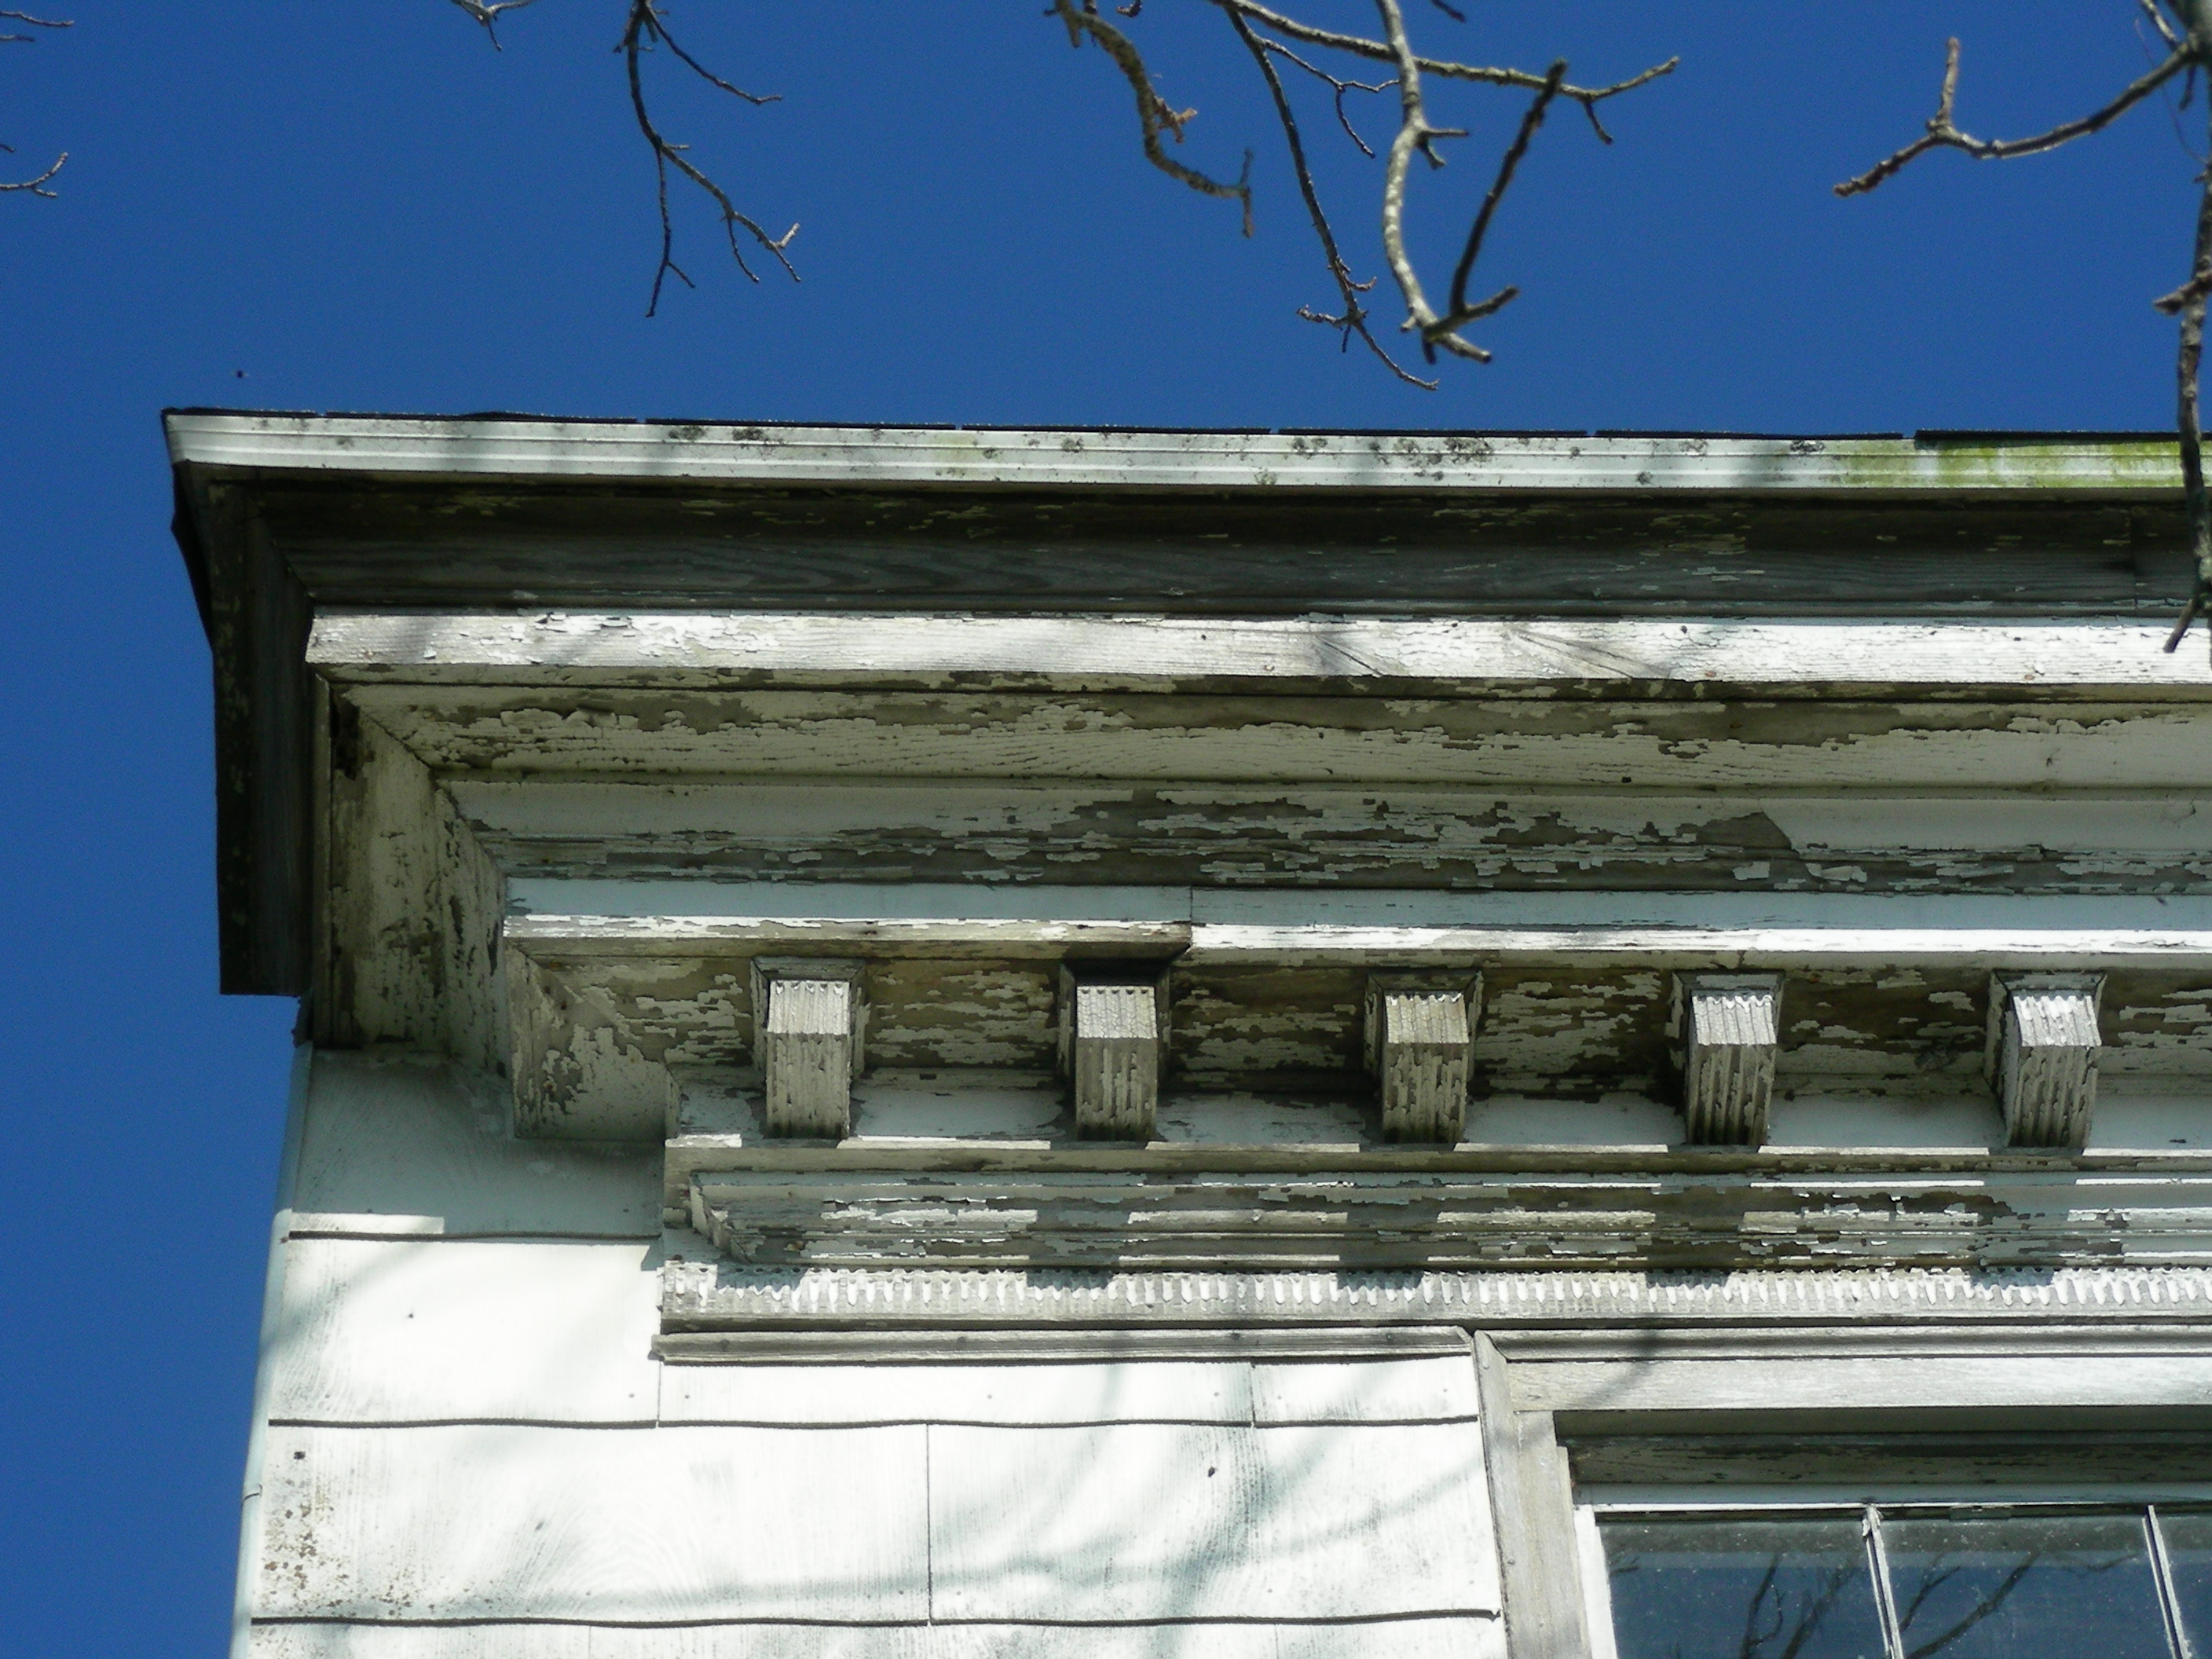 The eaves of the roof on Simpson's Grove. The building was cosntructed circa 1800.